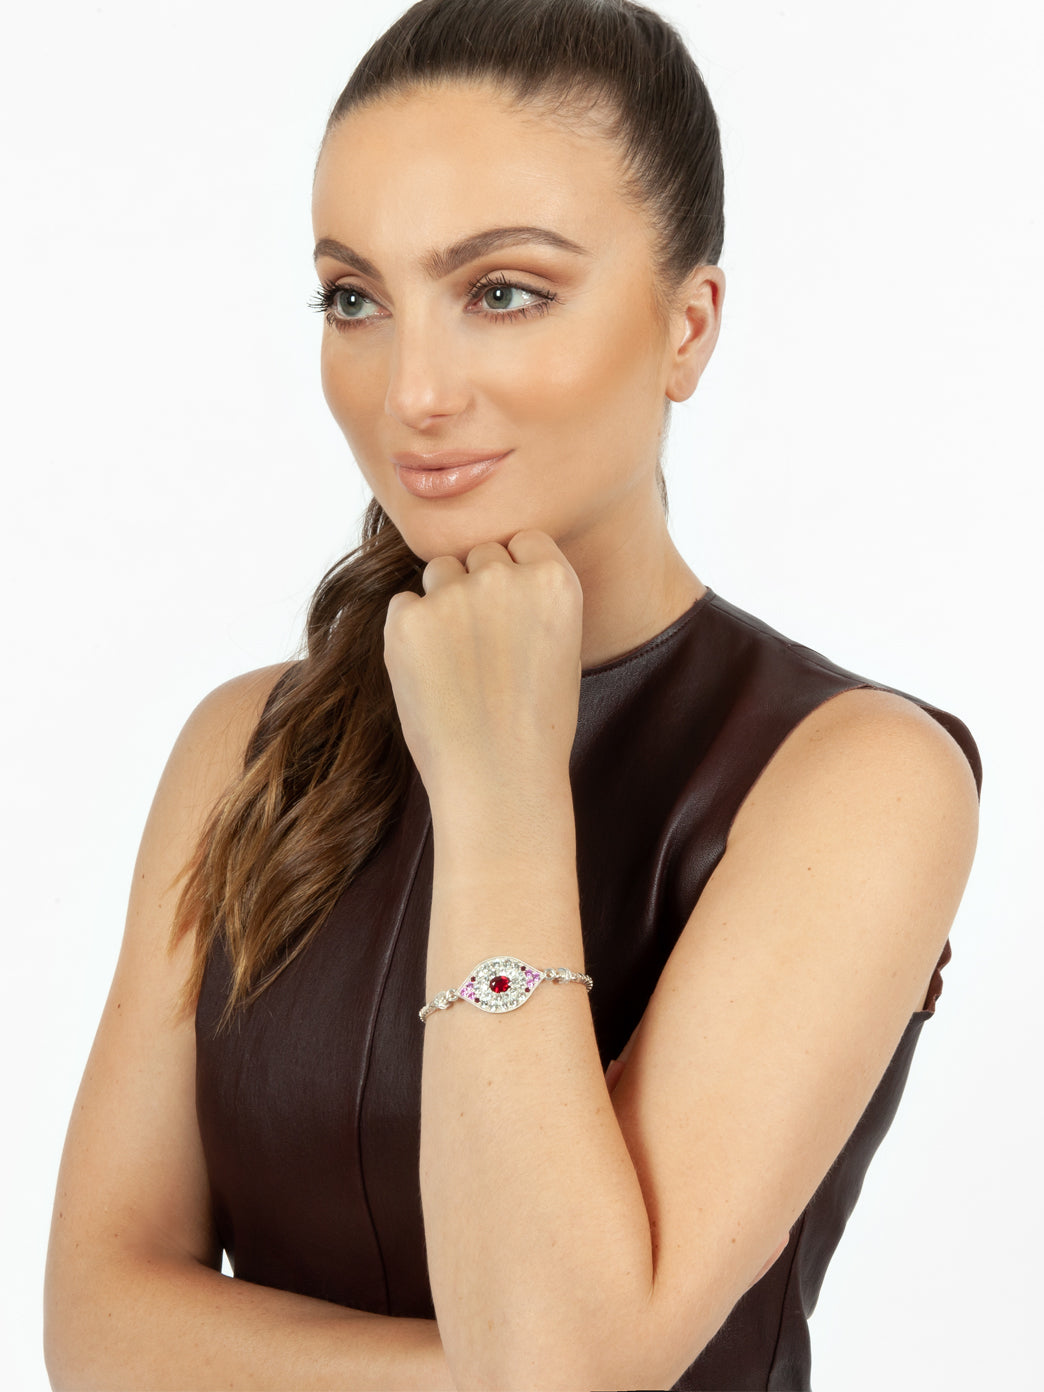 Fiorina Jewellery Oracle Eye Ruby Bracelet Model